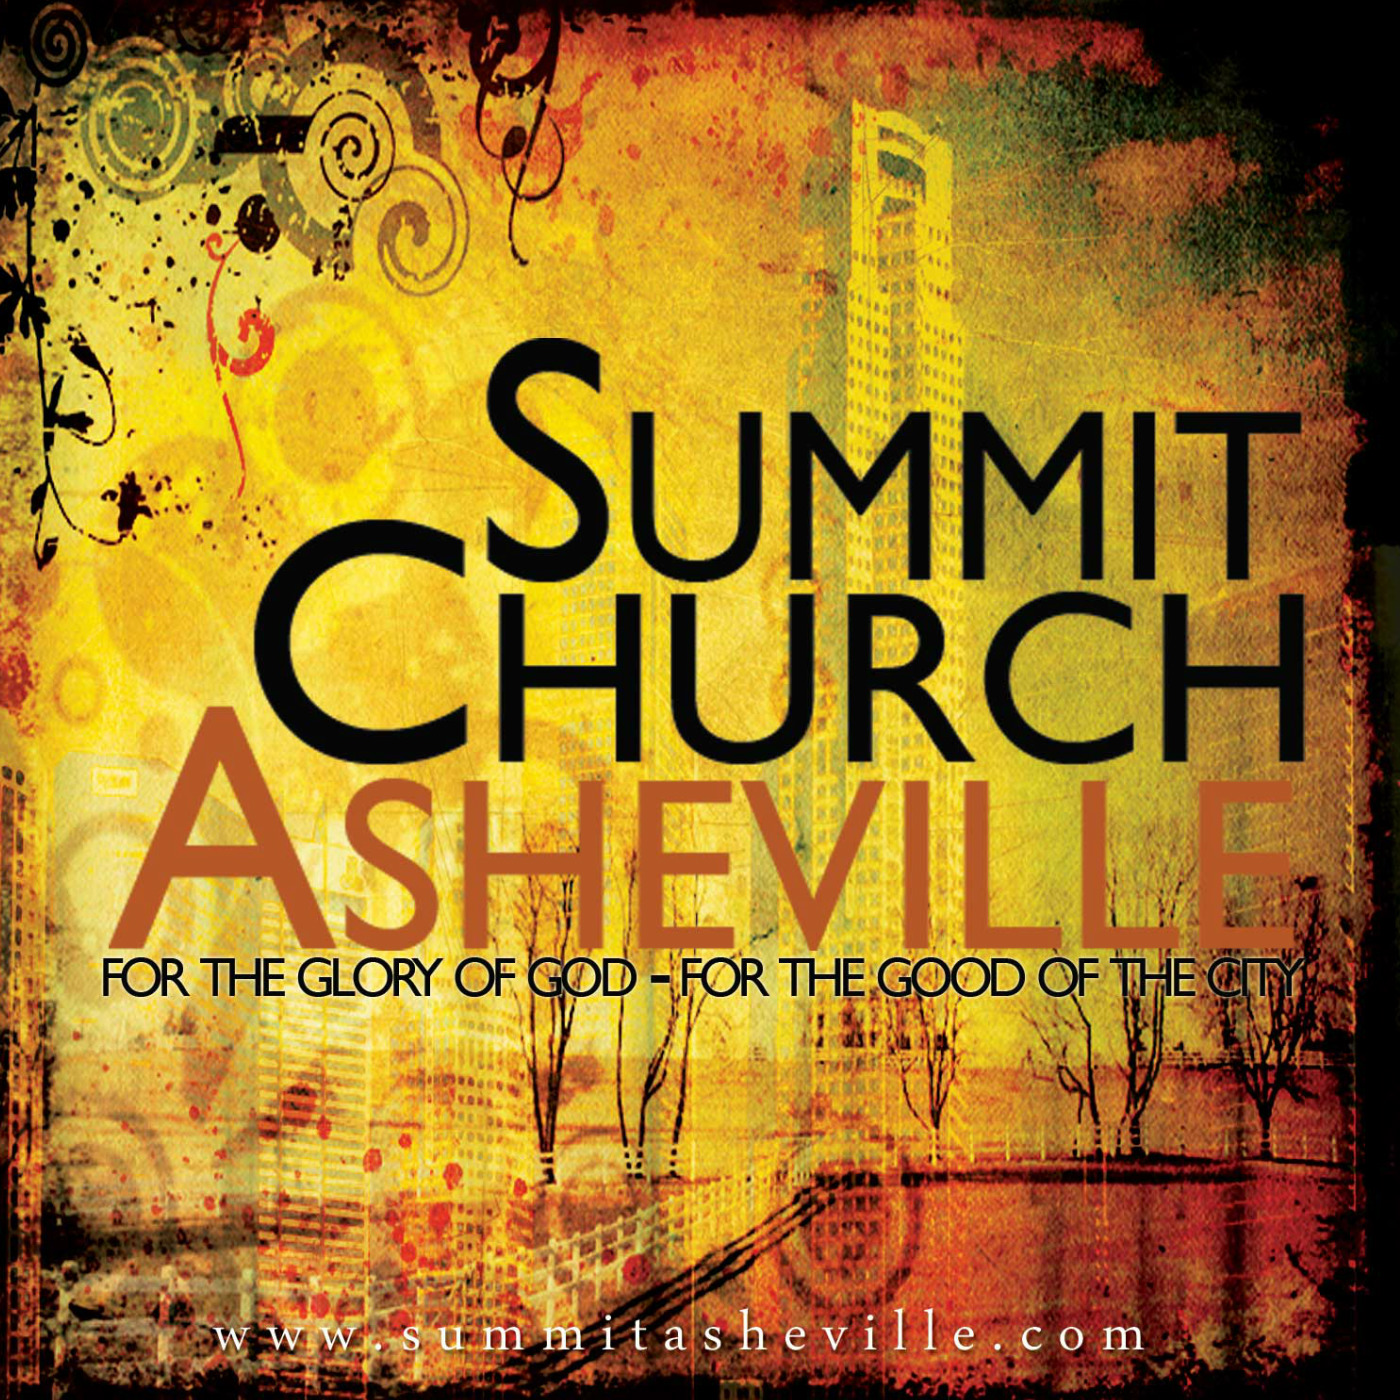 Summit Church (Asheville)